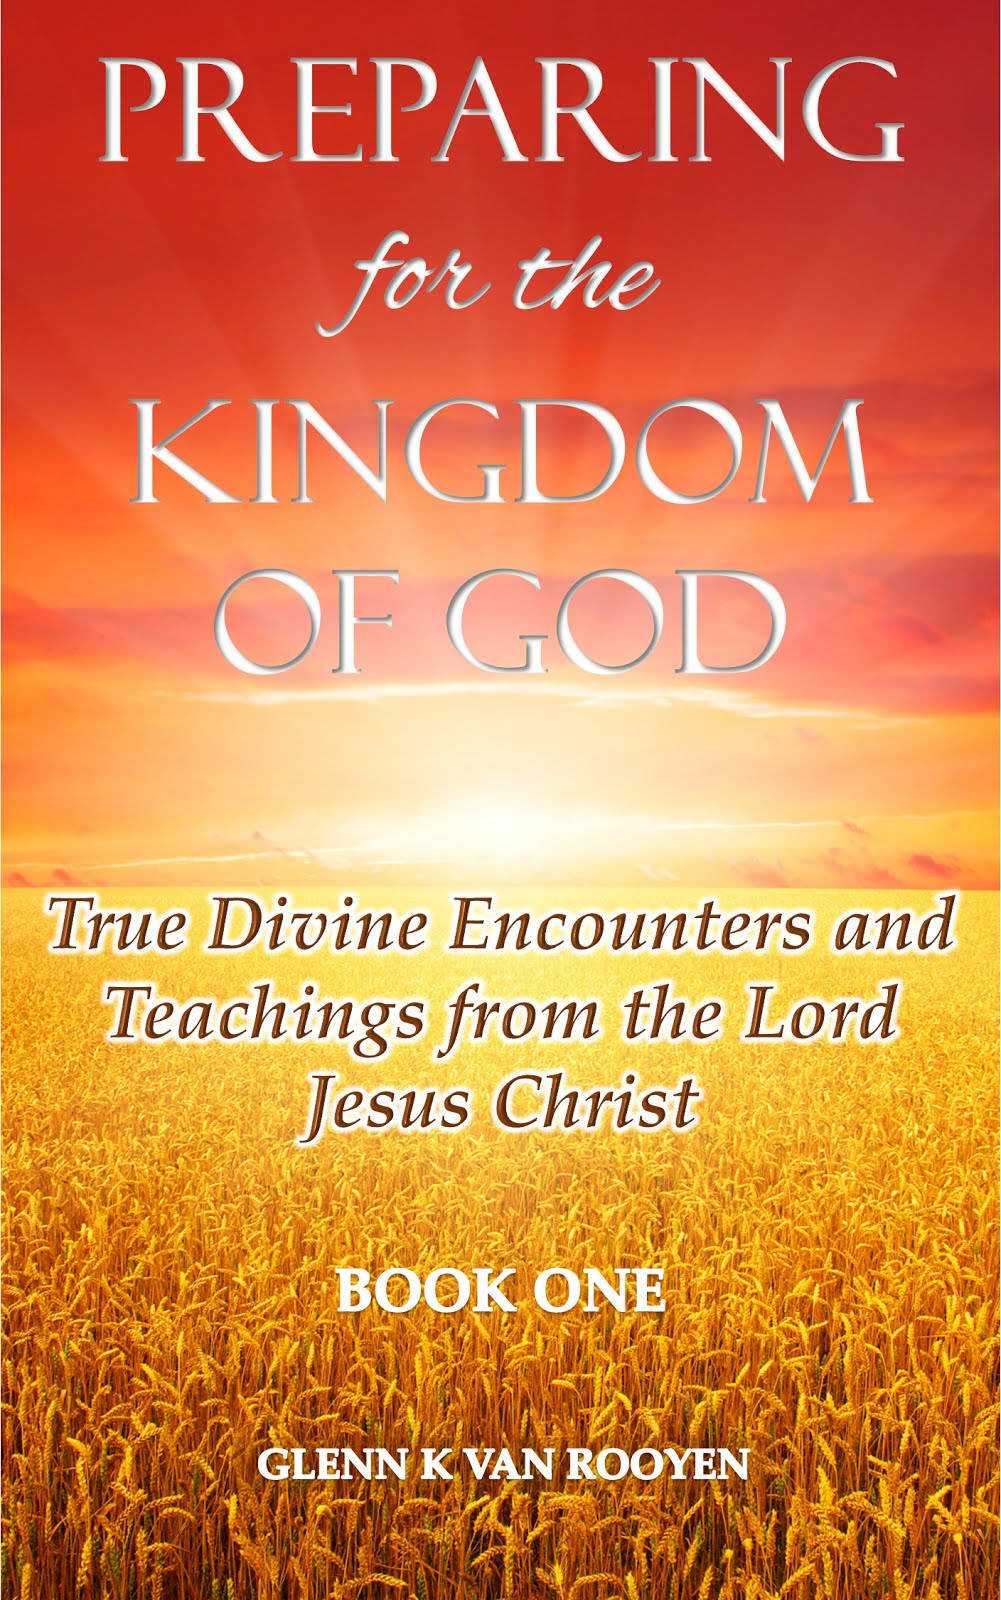 Preparing for the Kingdom of God: Visions from The Lord Jesus Christ